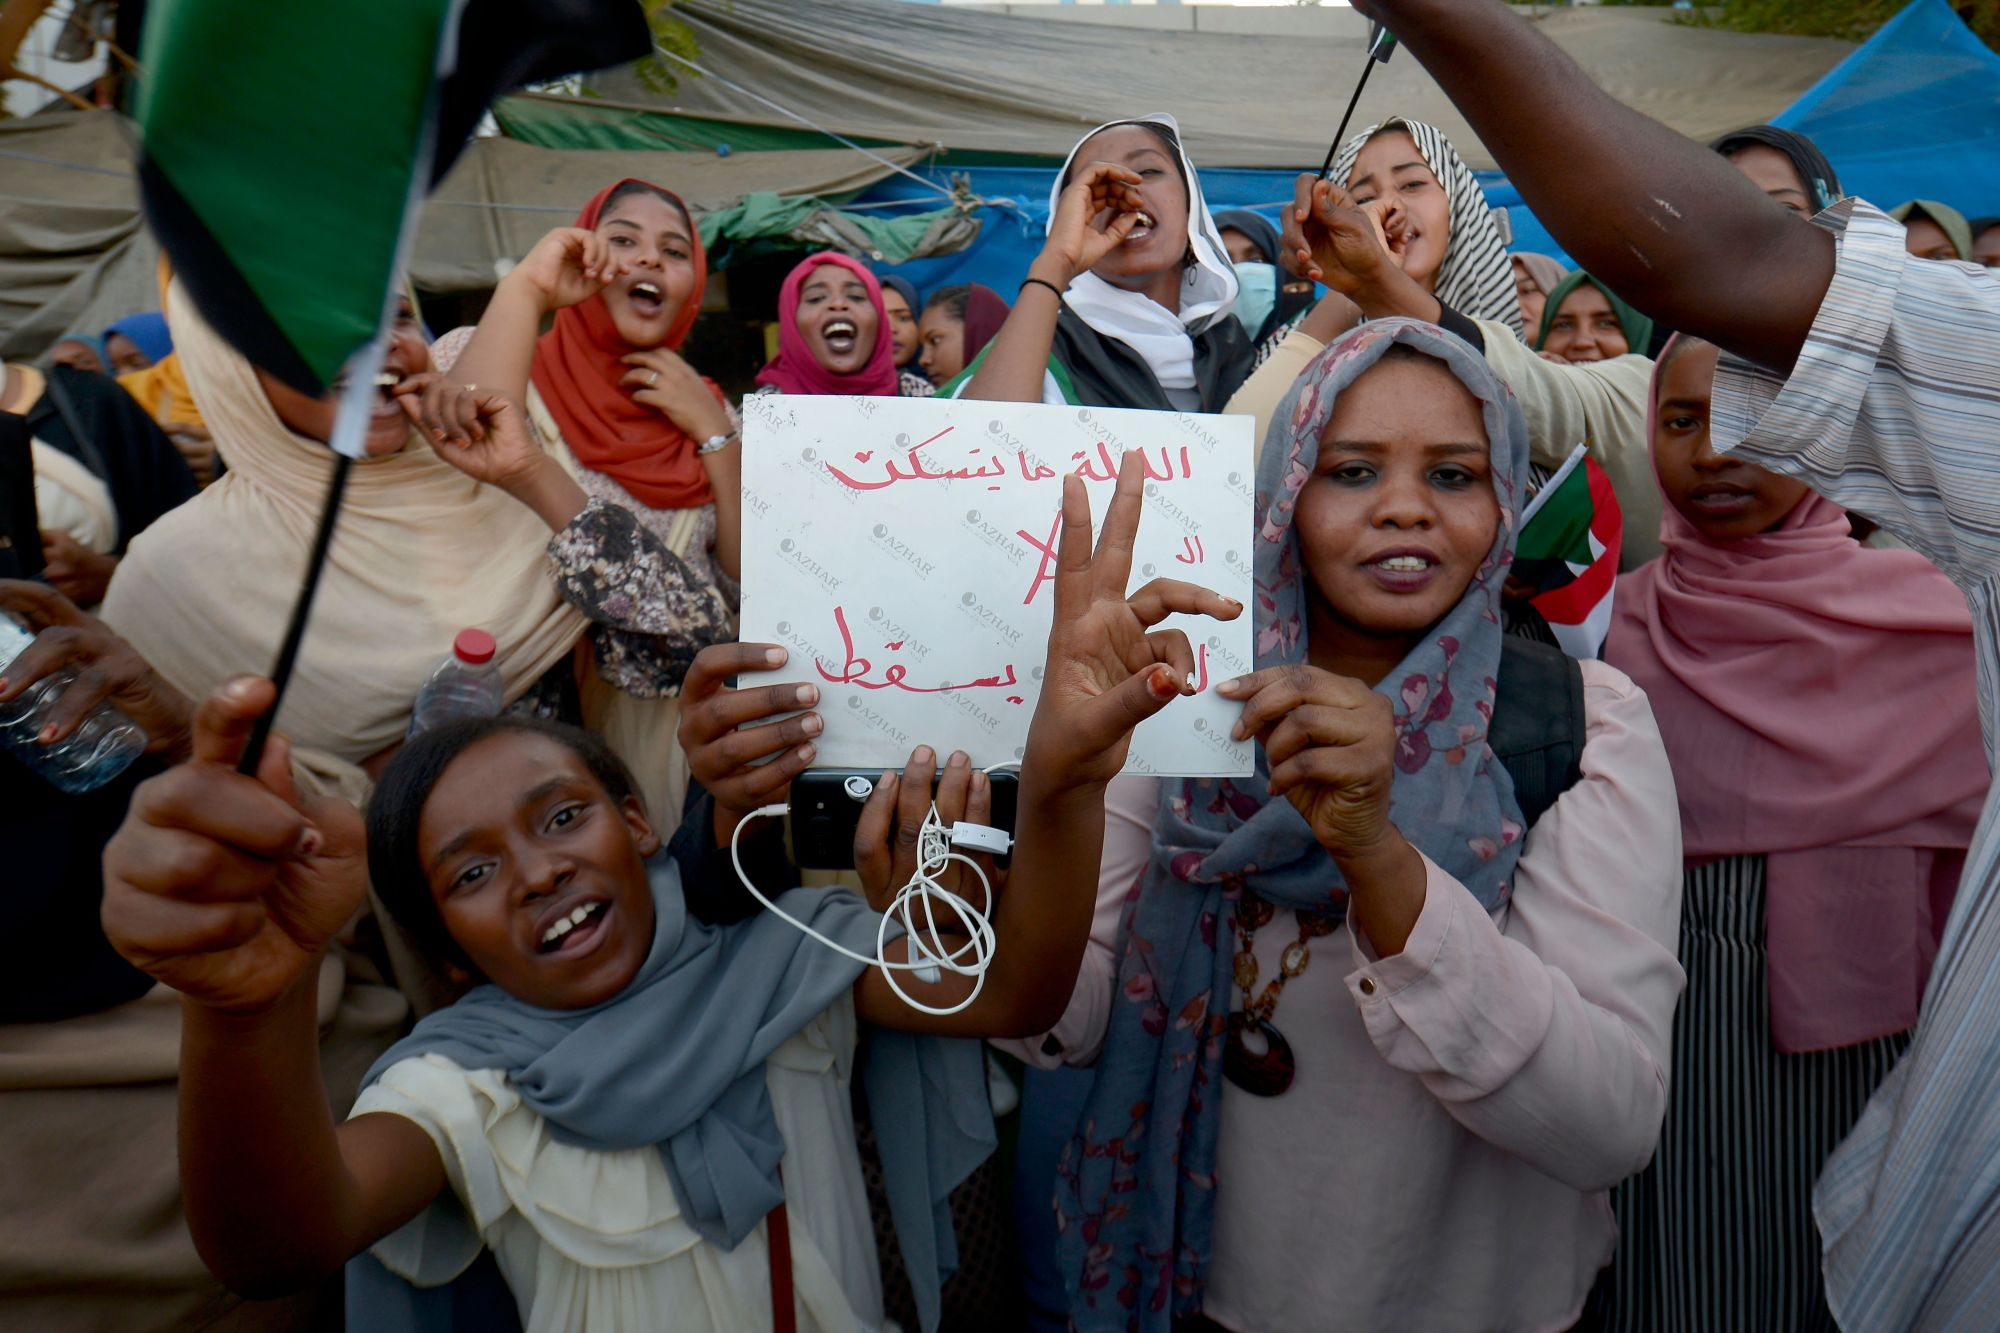 Huge Victory For Sudanese Women And Progress Made For Human Rights